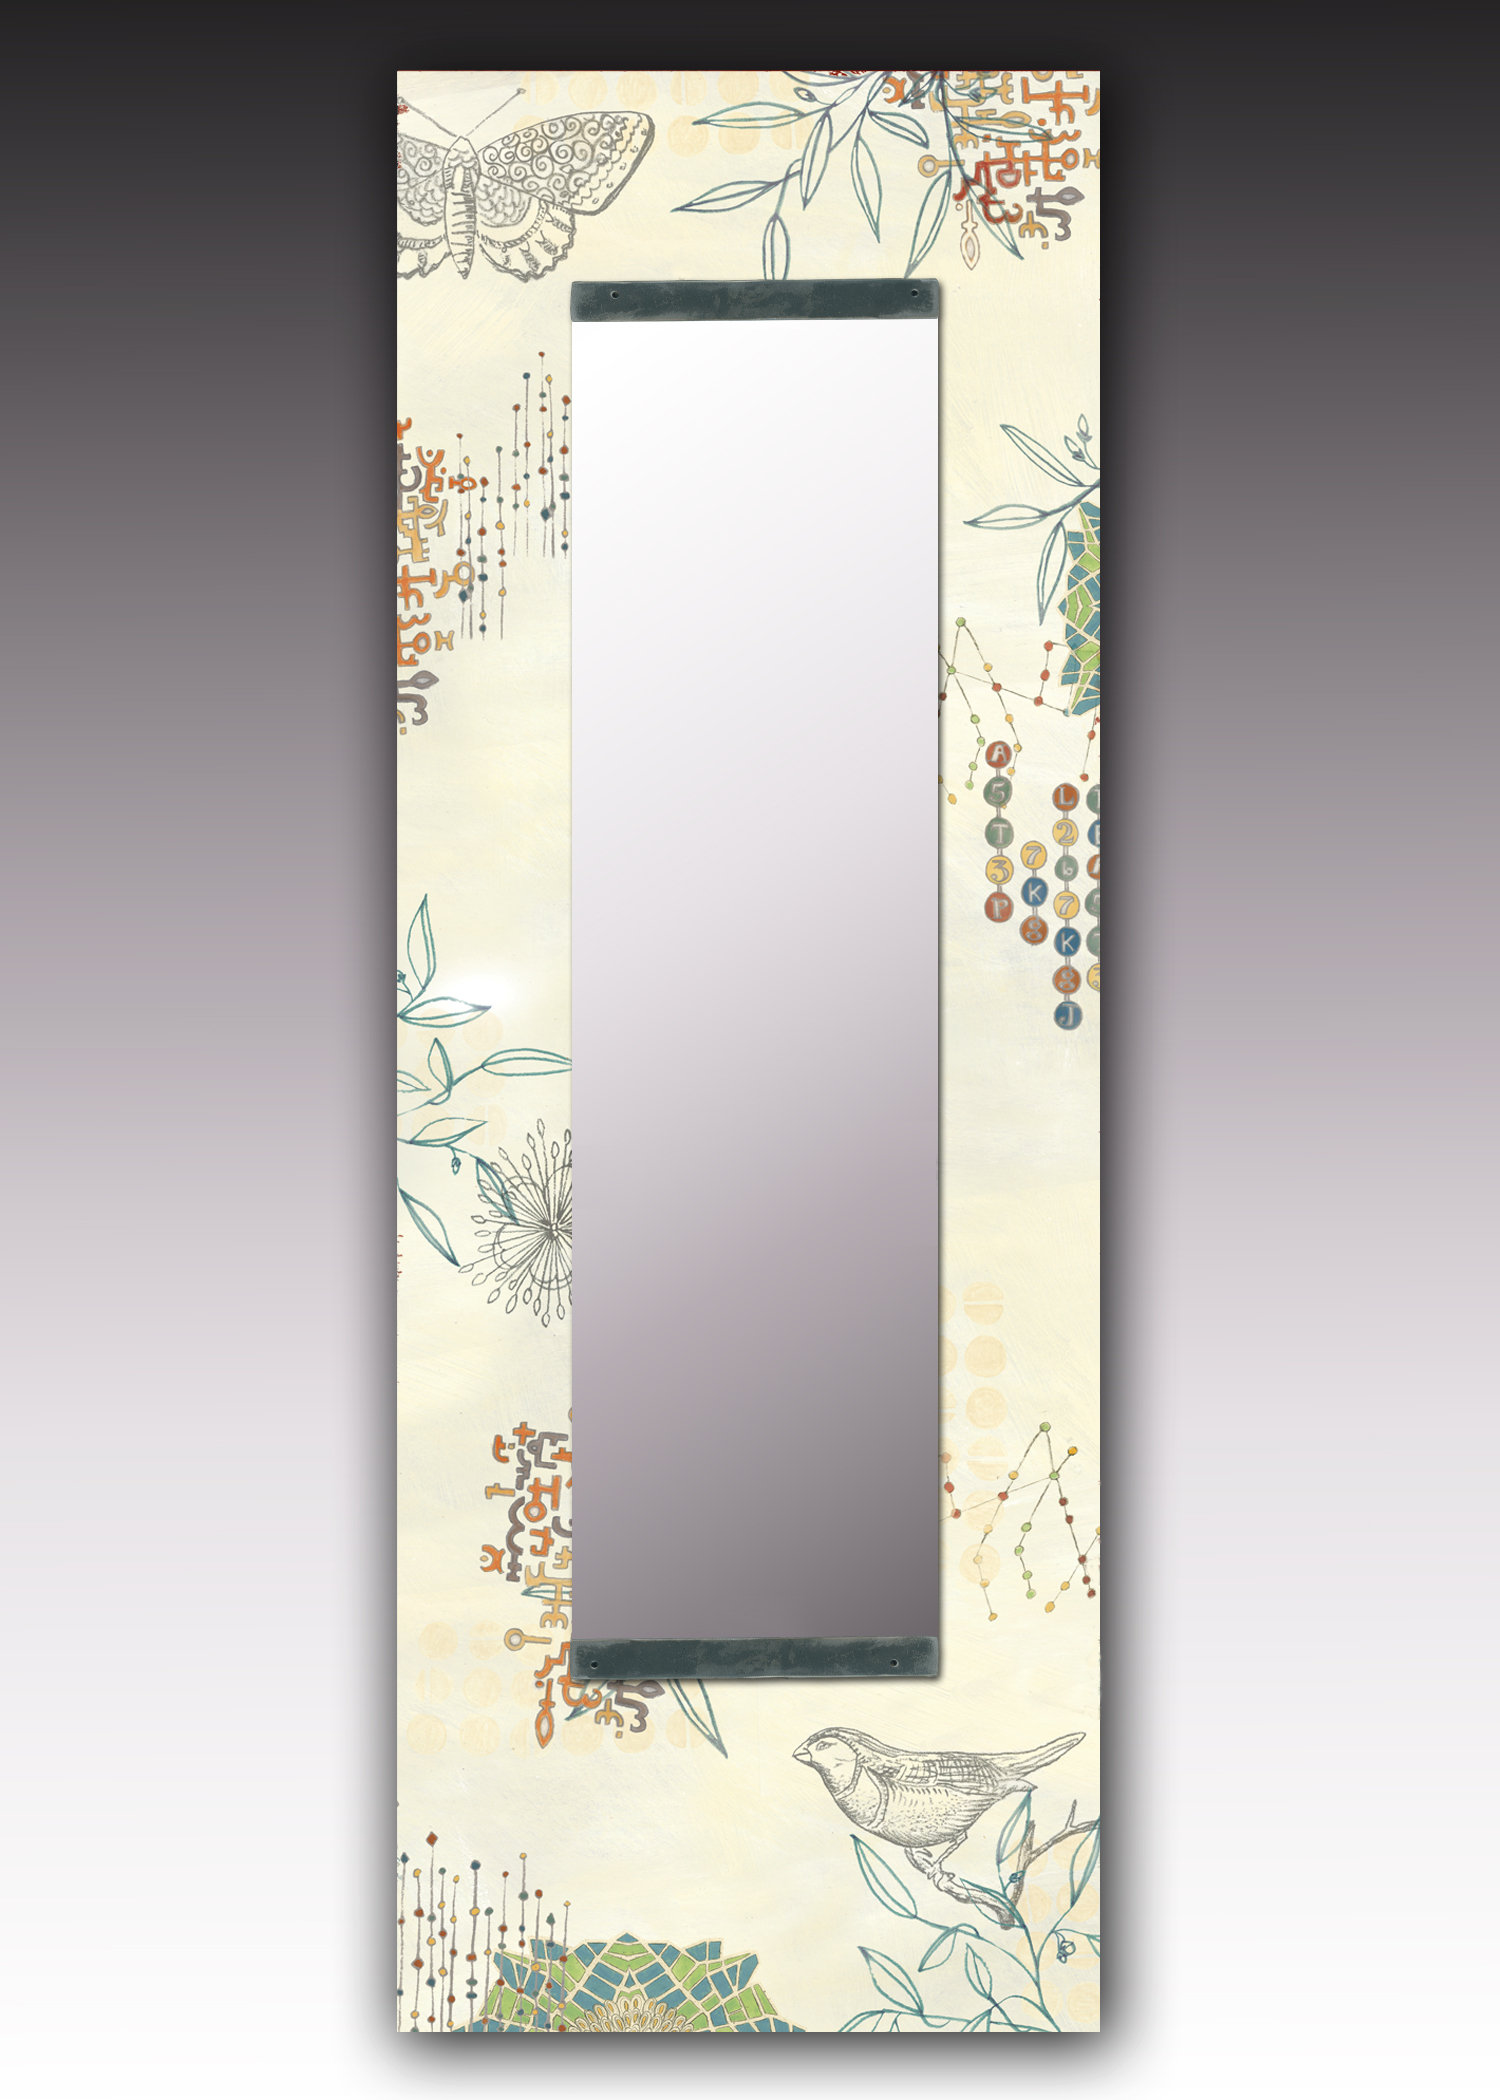 Journeys Wall Mirror by Janna Ugone and Justin Thomas (Mixed-Media Mirror)